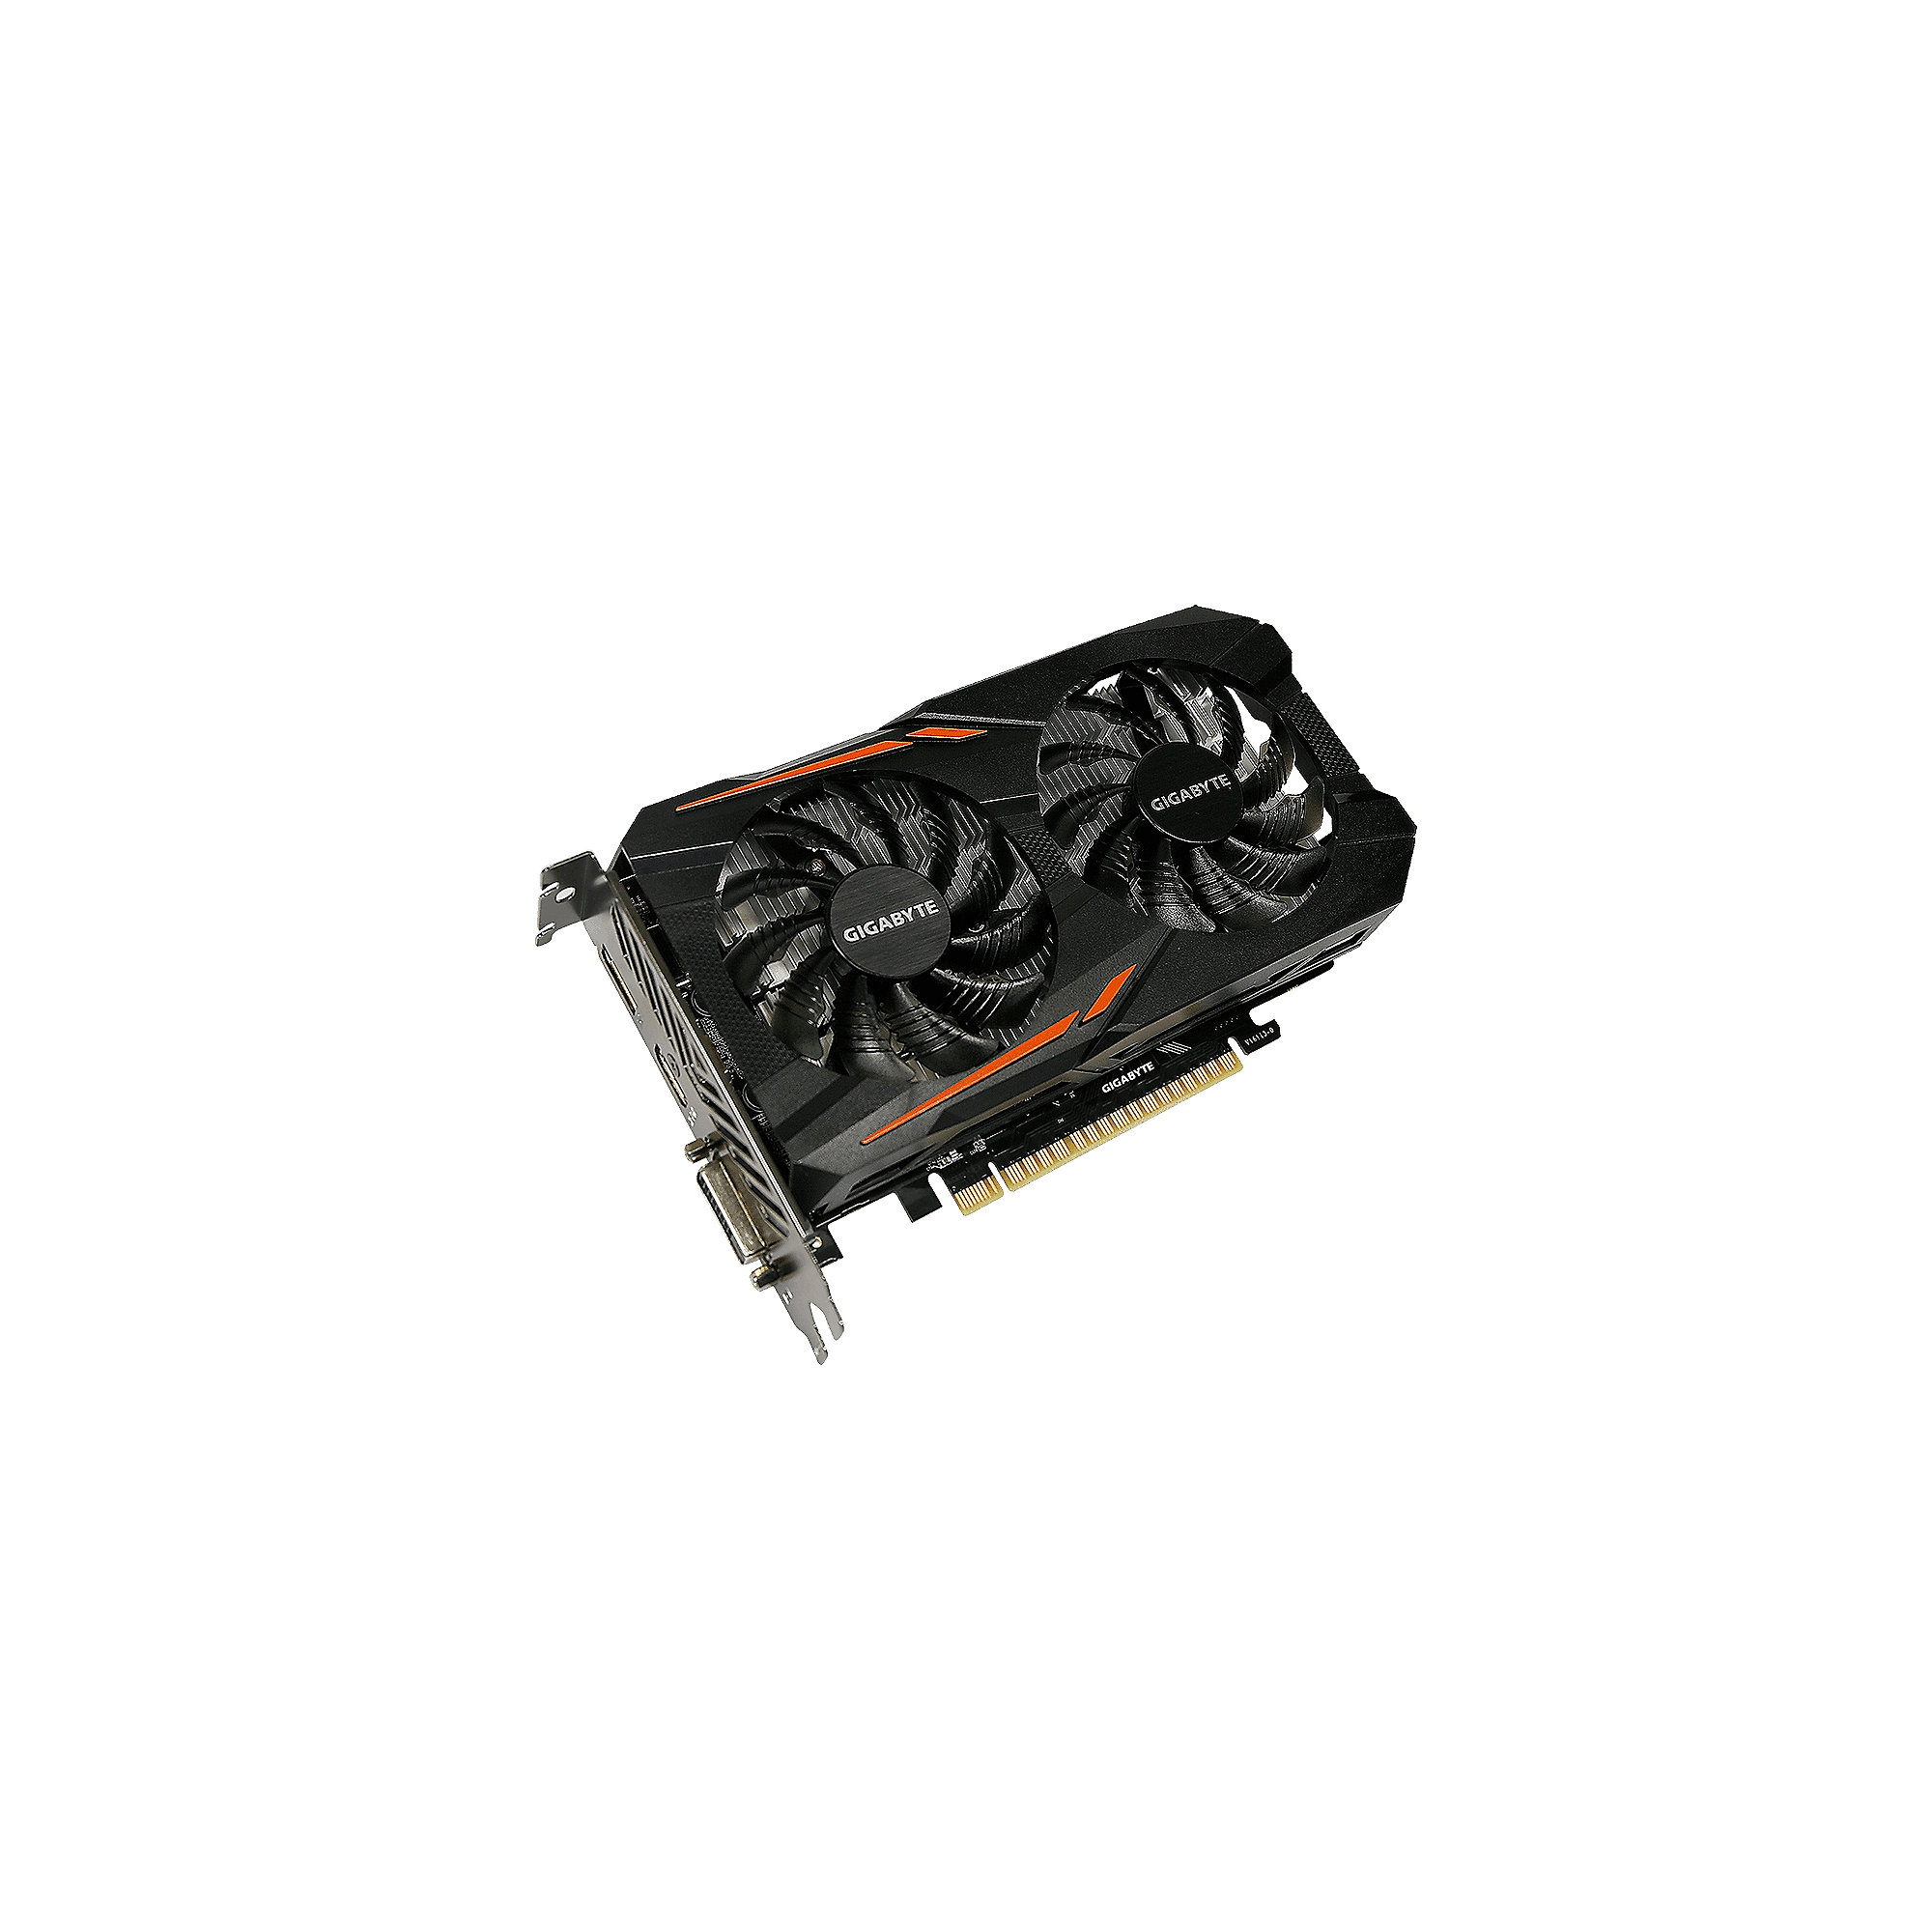 Gigabyte GeForce GTX 1050 OC 2GB GDDR5 Grafikkarte DVI/HDMI/DP